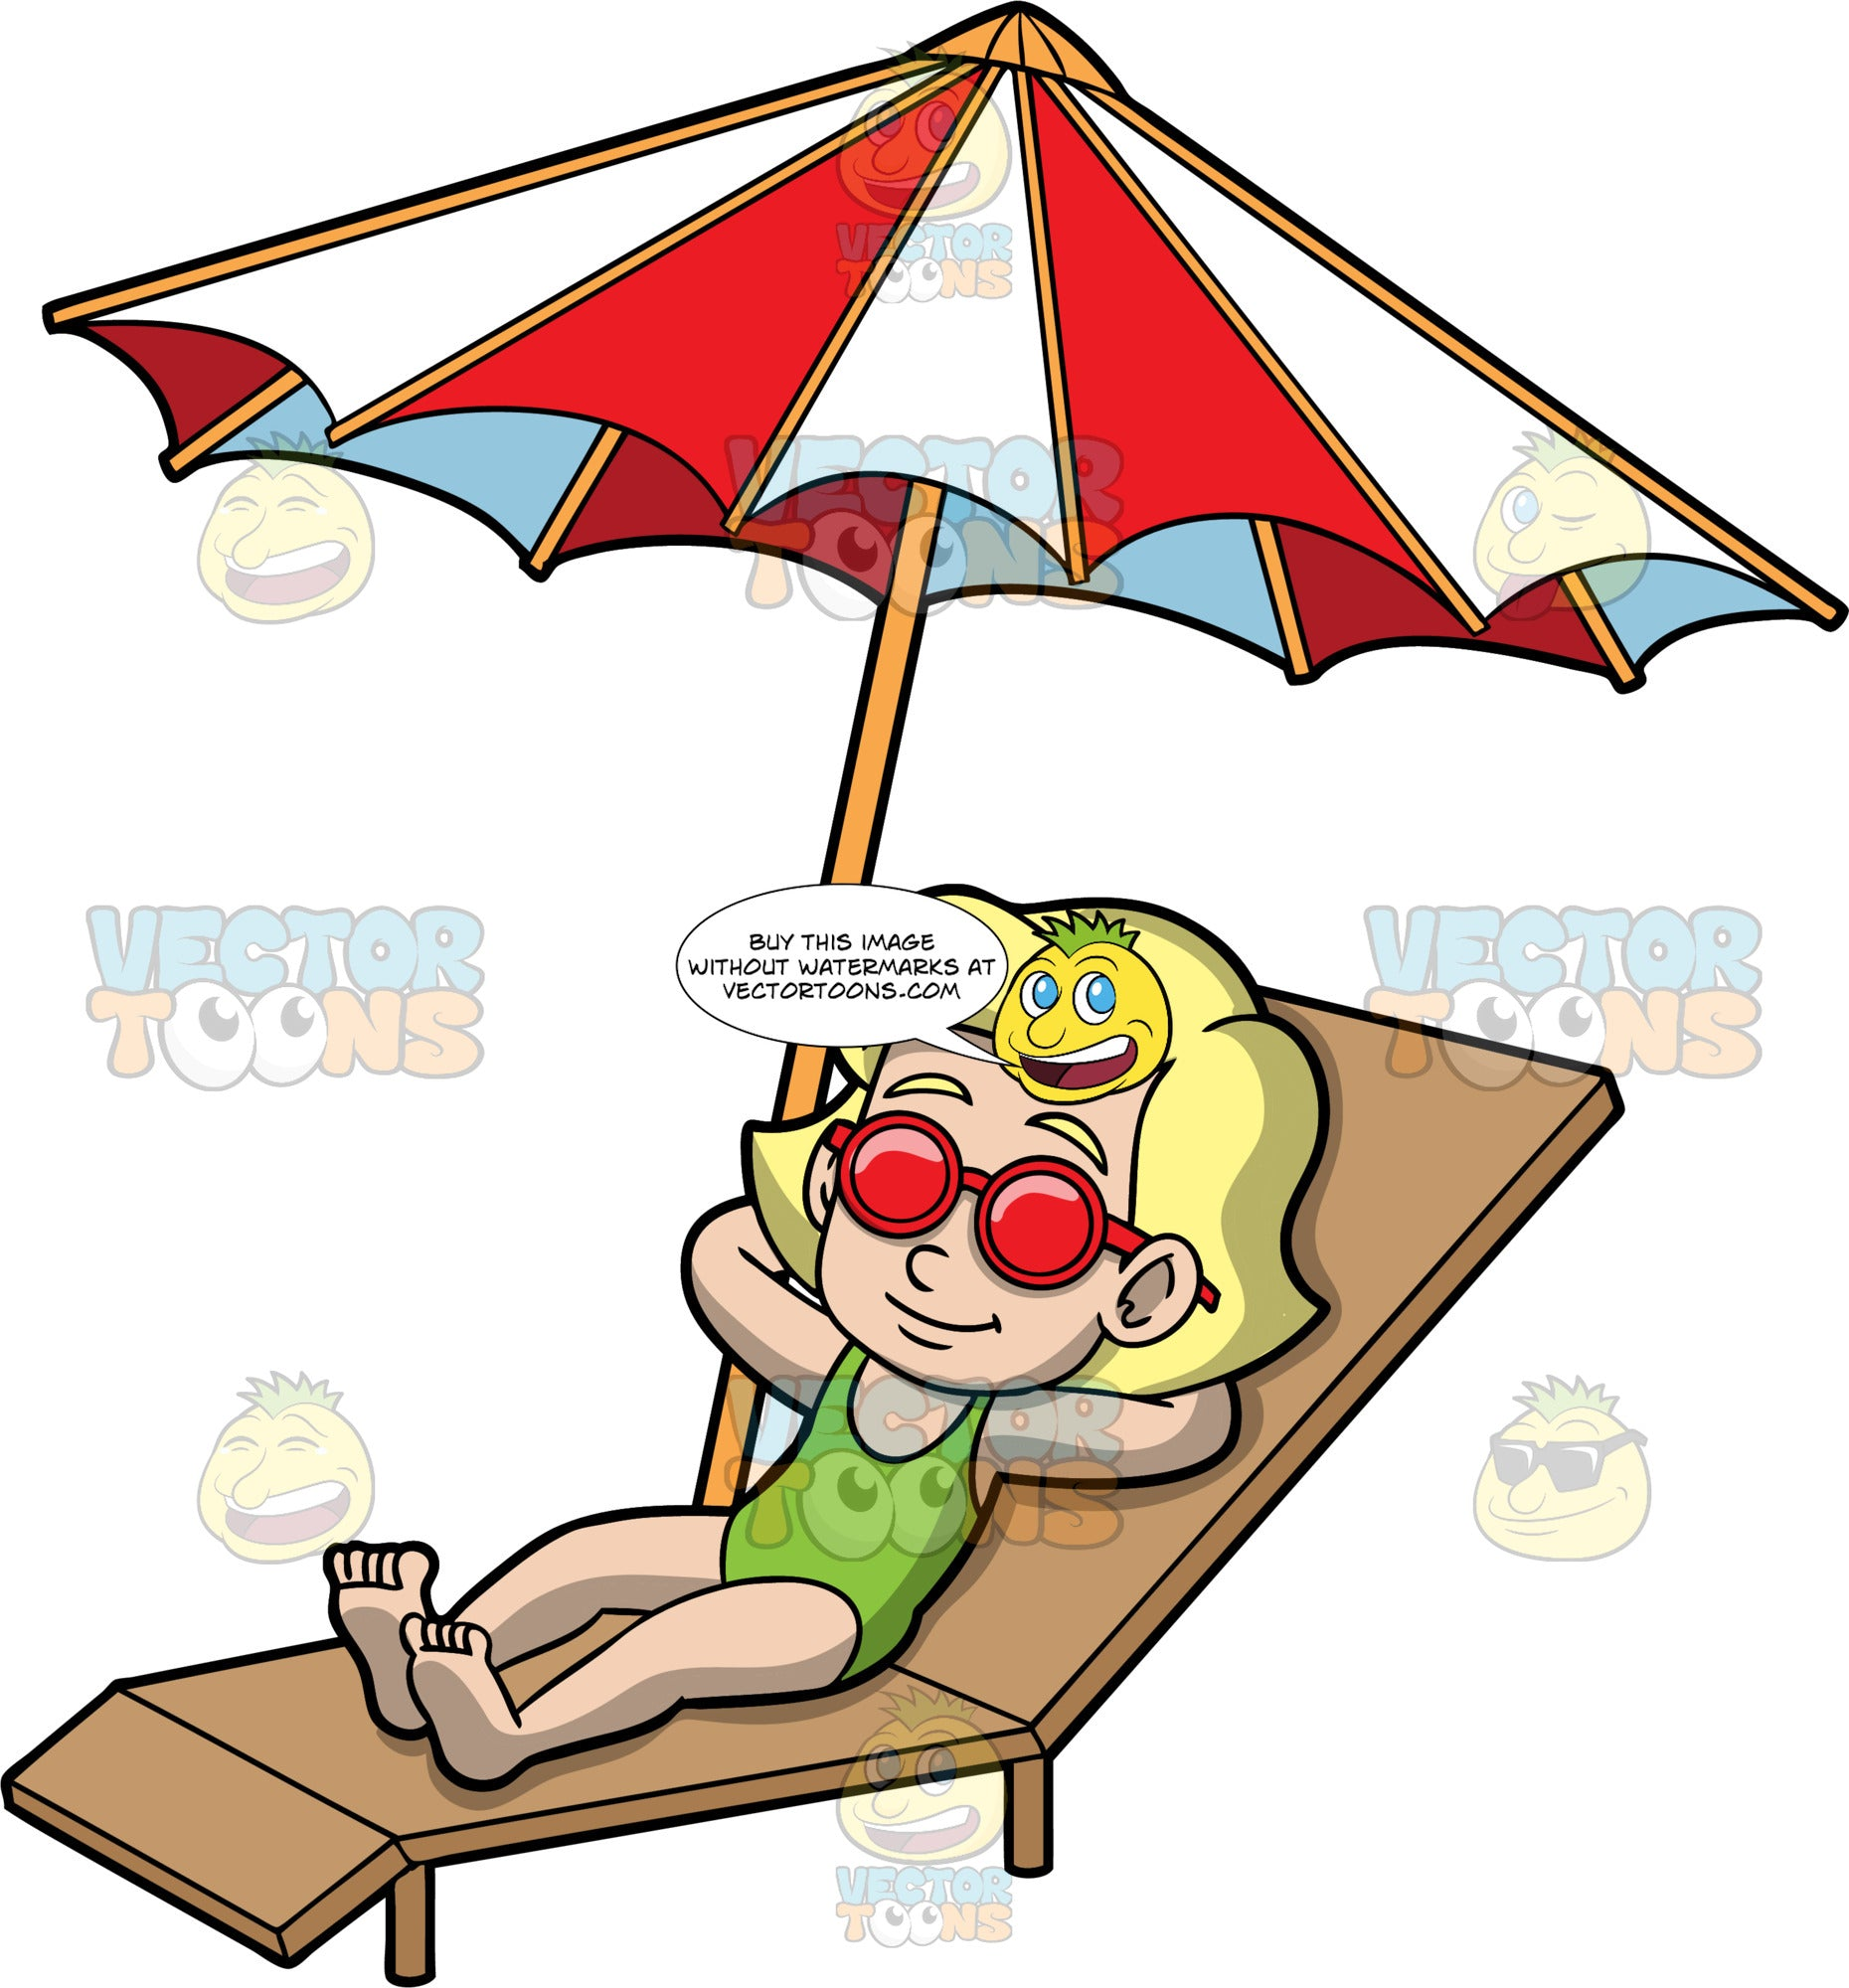 Young Mary Catching Some Rays. A blonde girl wearing a green bathing suit and red sunglasses, lying in the sun on a brown lounge chair with her arms behind her head and a red and white umbrella beside her